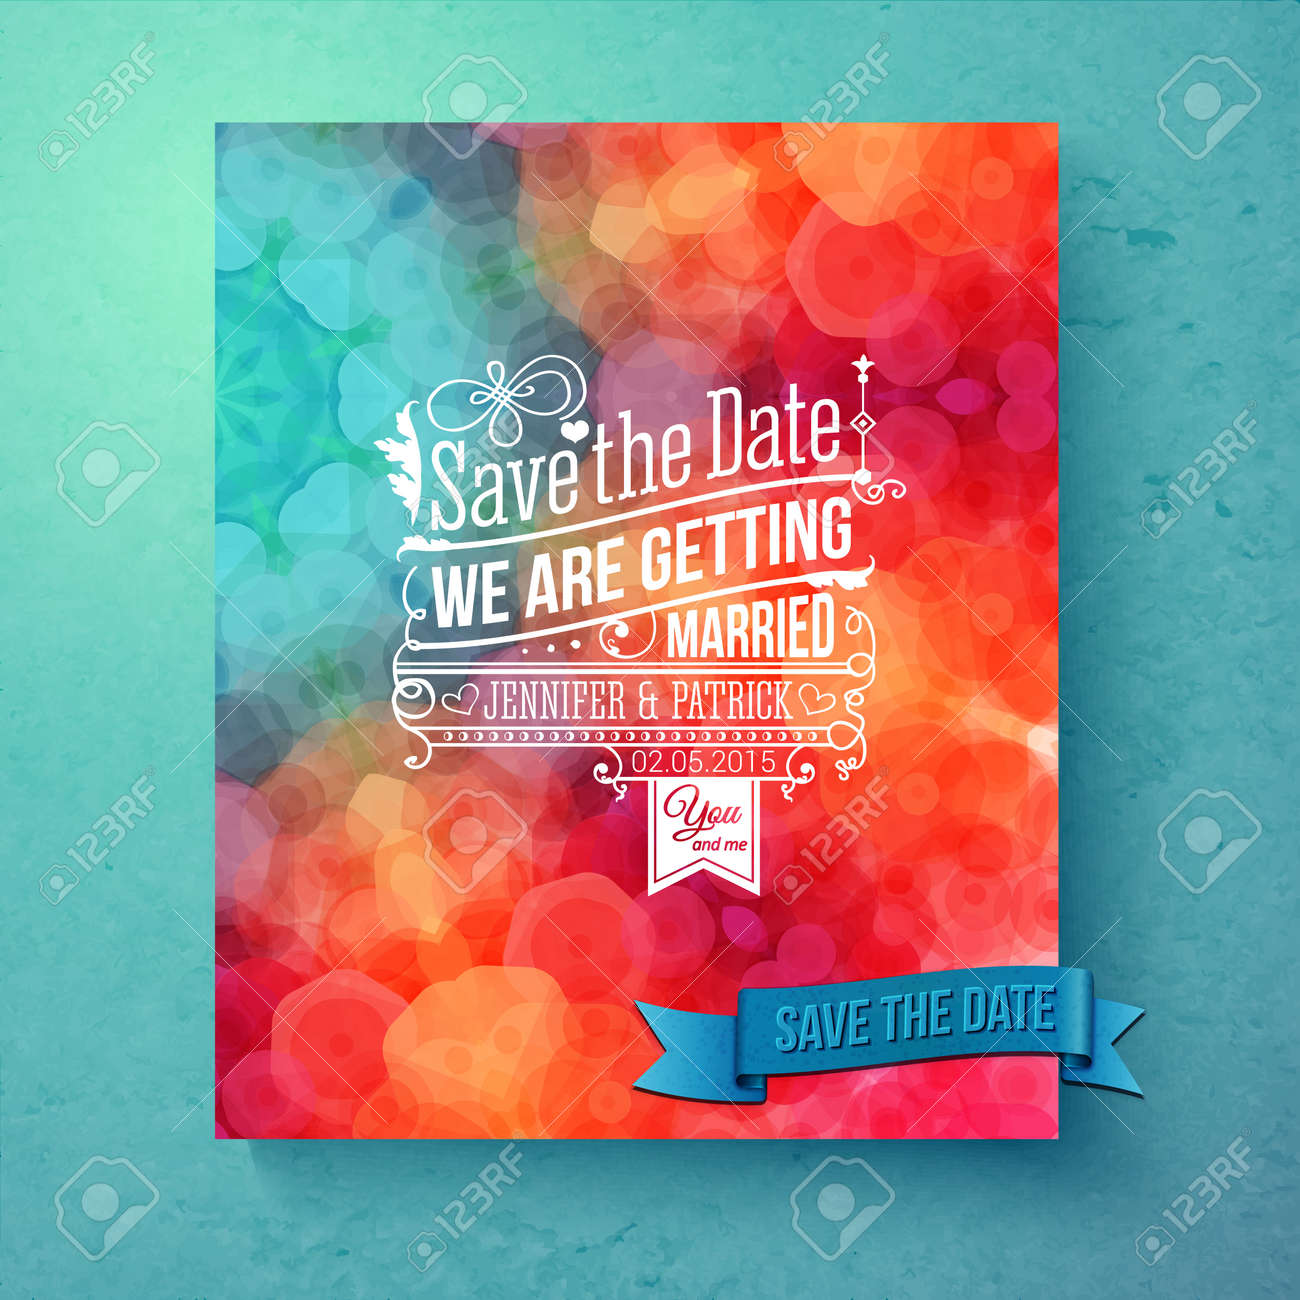 Dynamic Vibrant Save The Date Wedding Invitation Template With ...